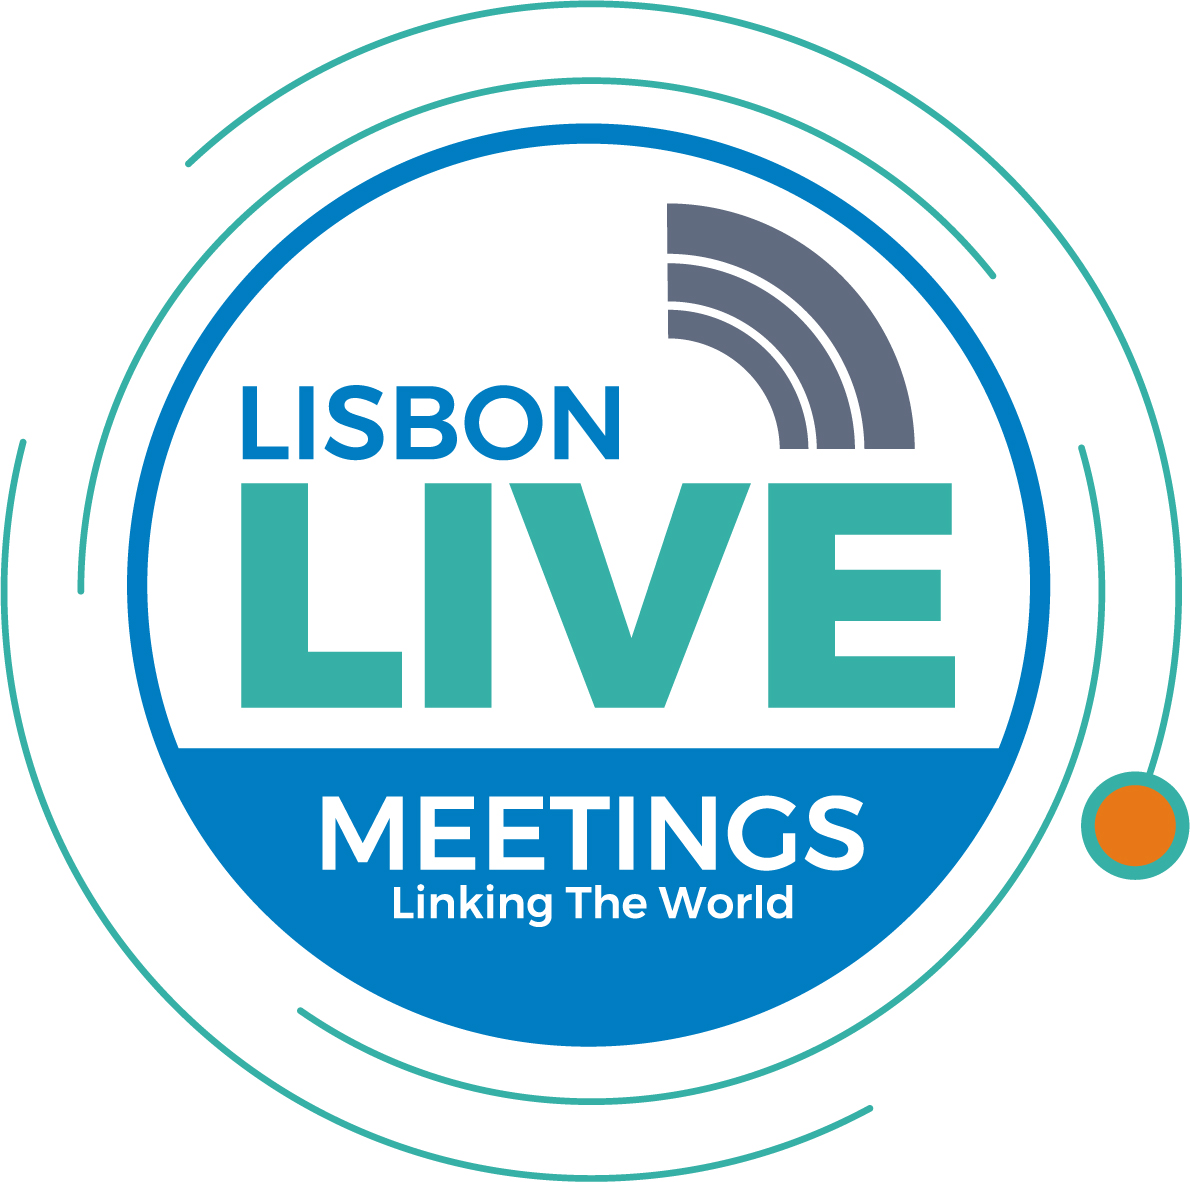 Lisbon Live Meetings - logo